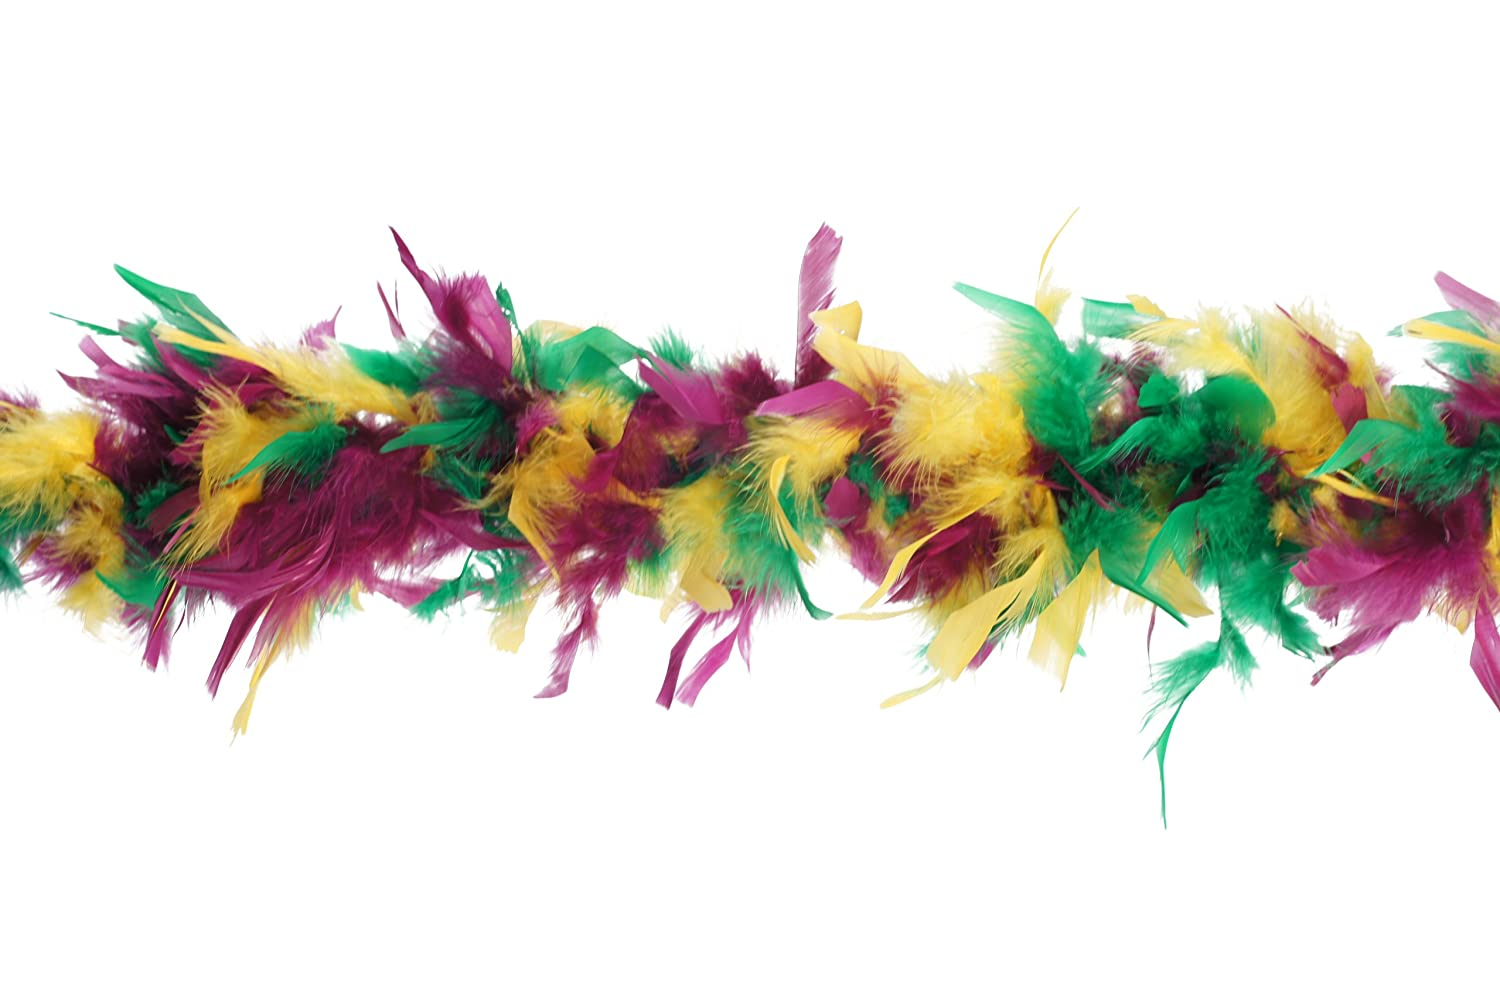 Zucker Medium Weight Chandelle Feather boa Multi Colors - Mardigras Mix - 5.5 CLC5.5--NY